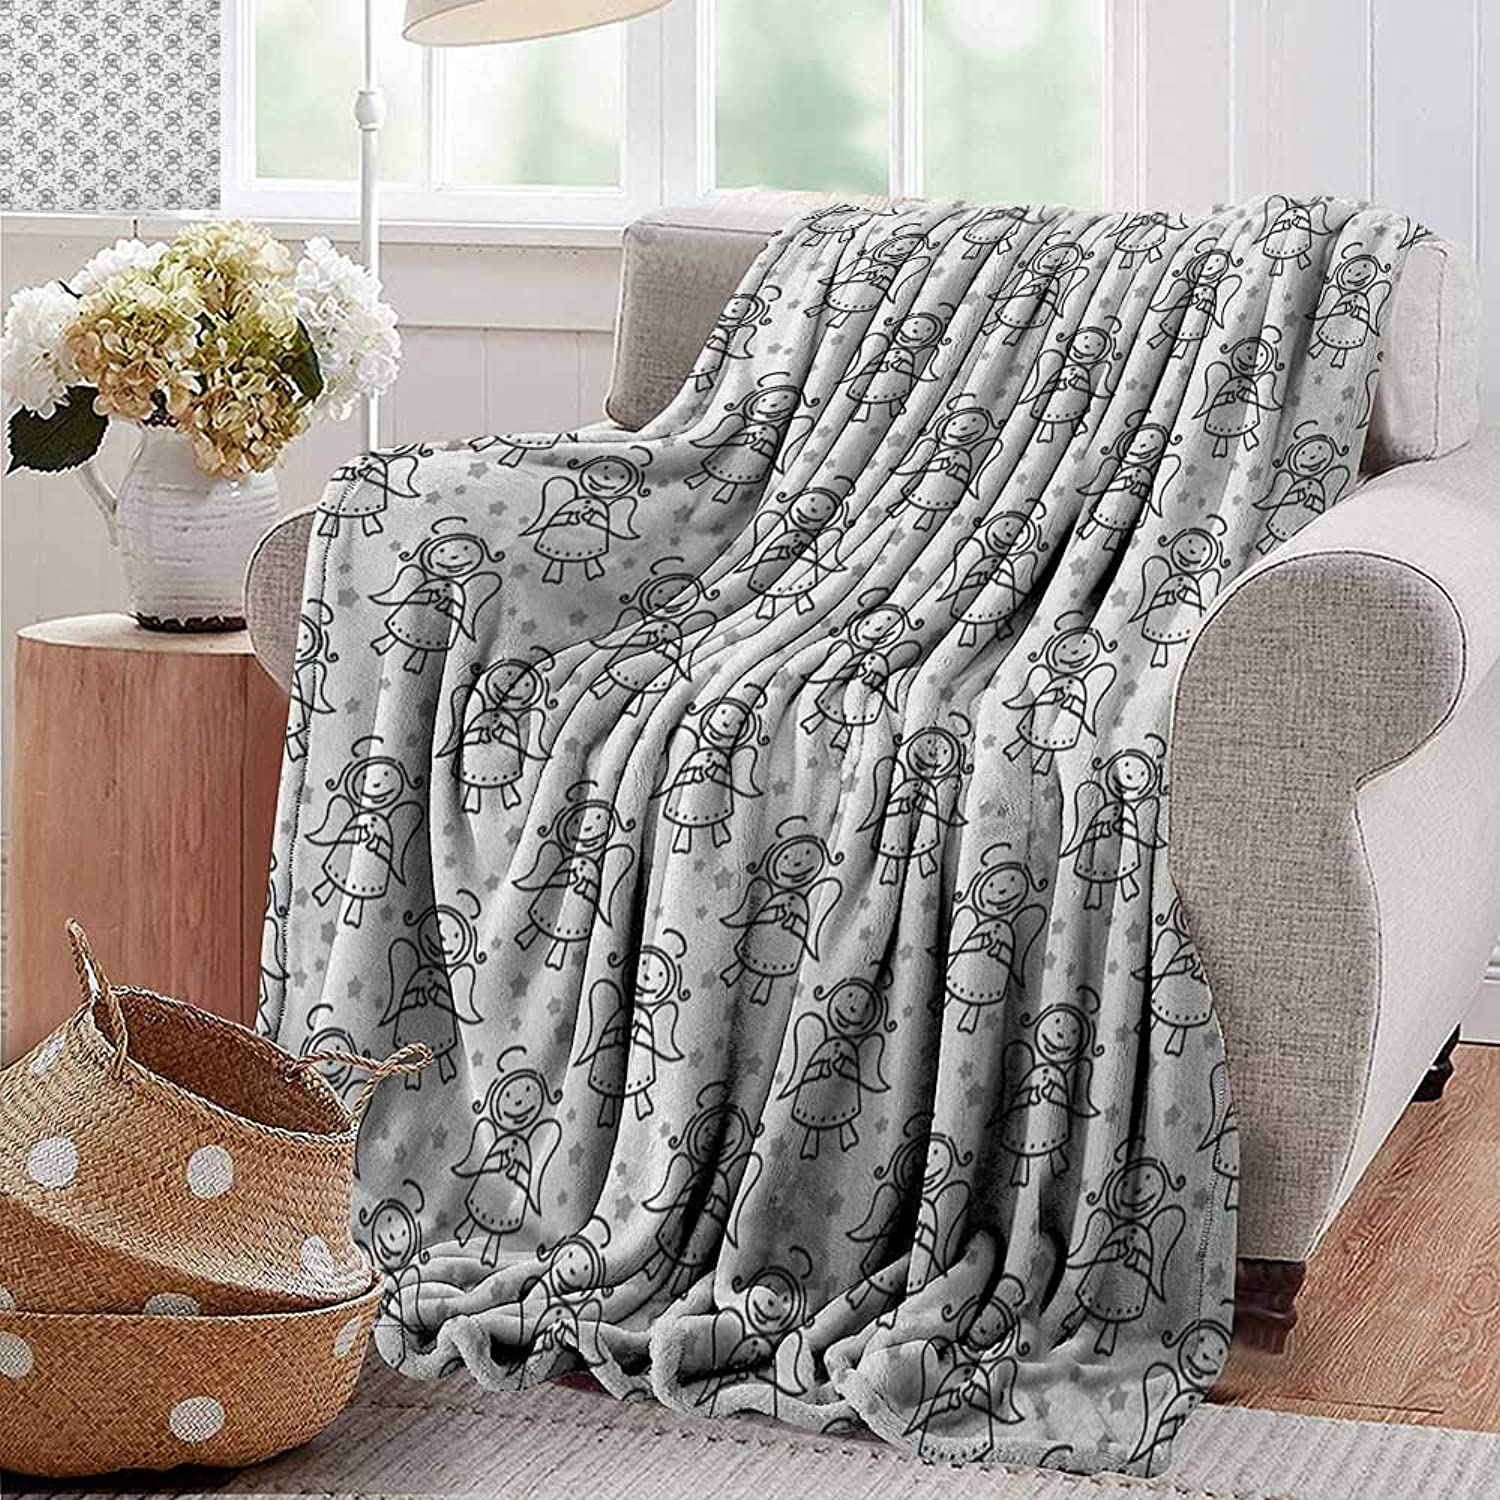 XavieraDoherty Cool Blanket,Angel,Christmas Angel Cute Winged Girl with Stars Heavenly Amusing Smiling Princess, Grey White Black,for Bed & Couch Sofa Easy Care 50 x70